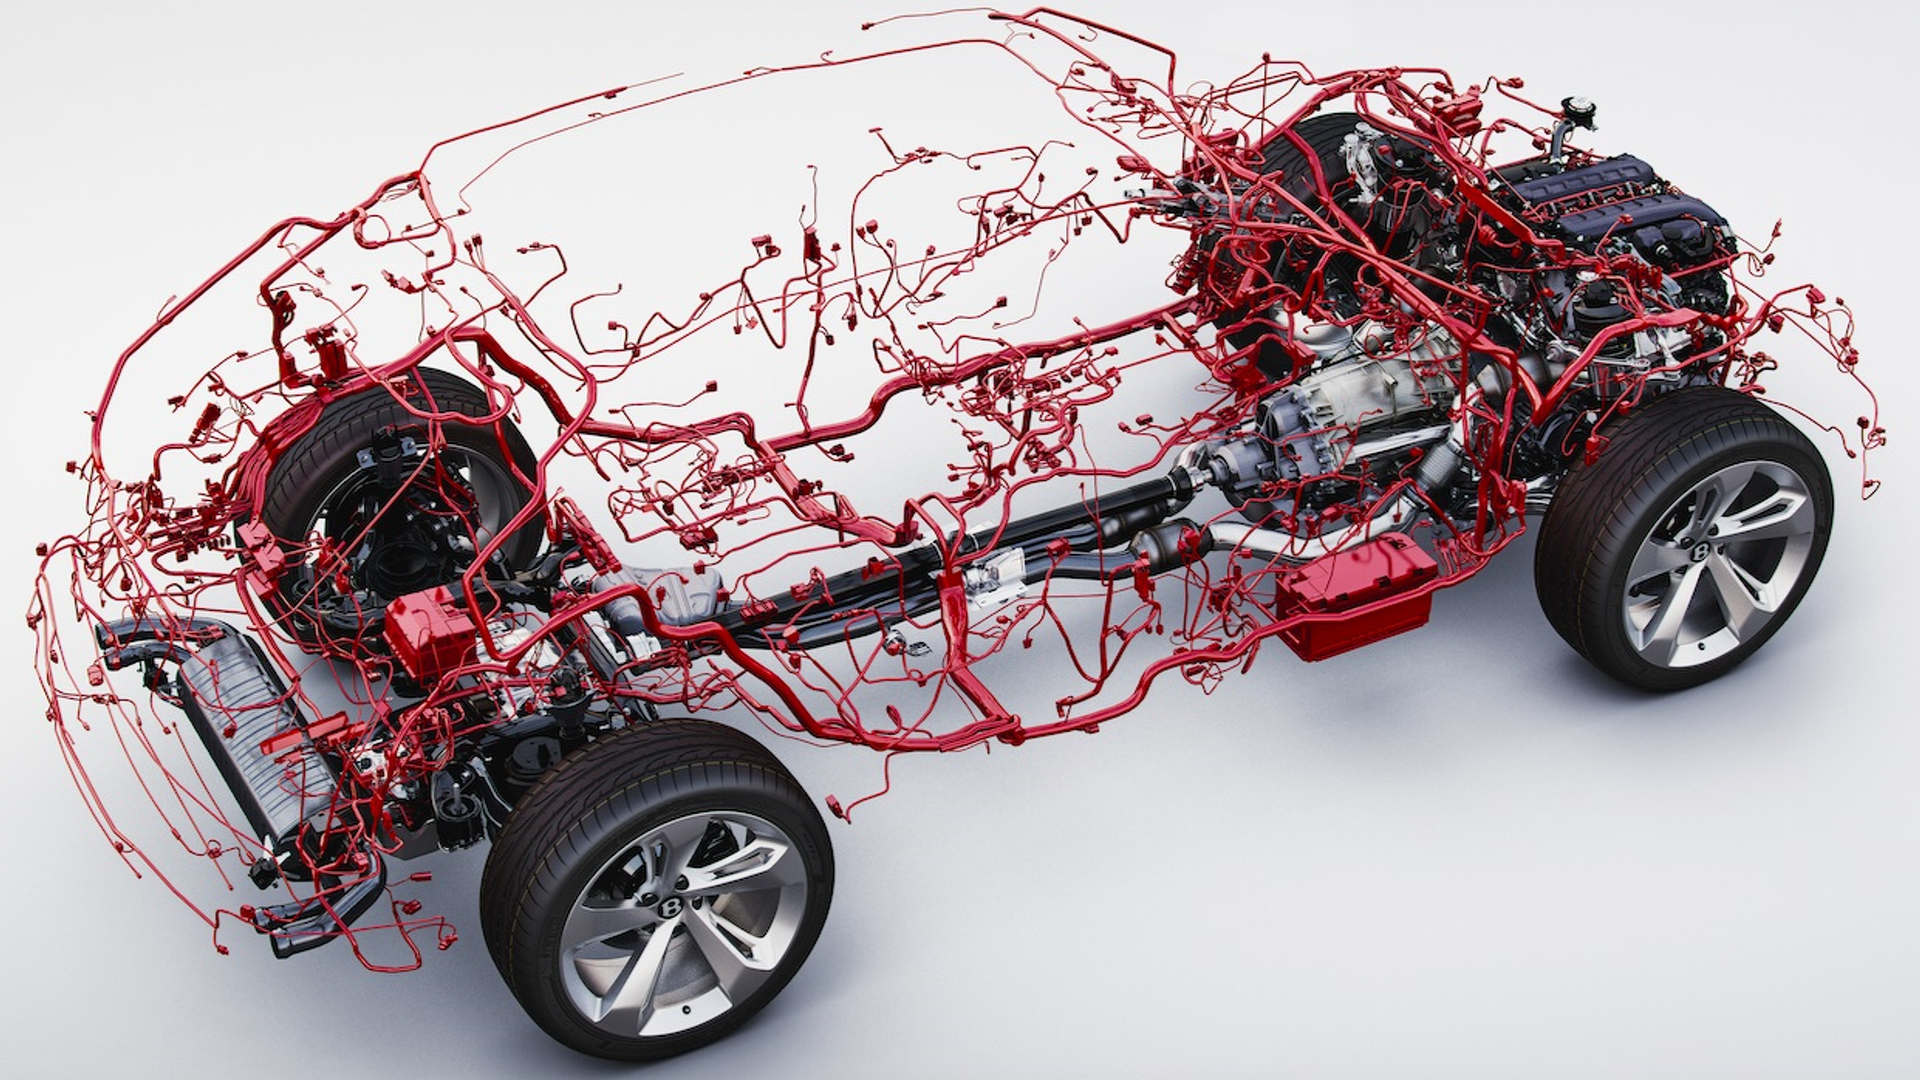 bentley bentayga wiring harness bentley bentayga wiring harness is weirdly beautiful